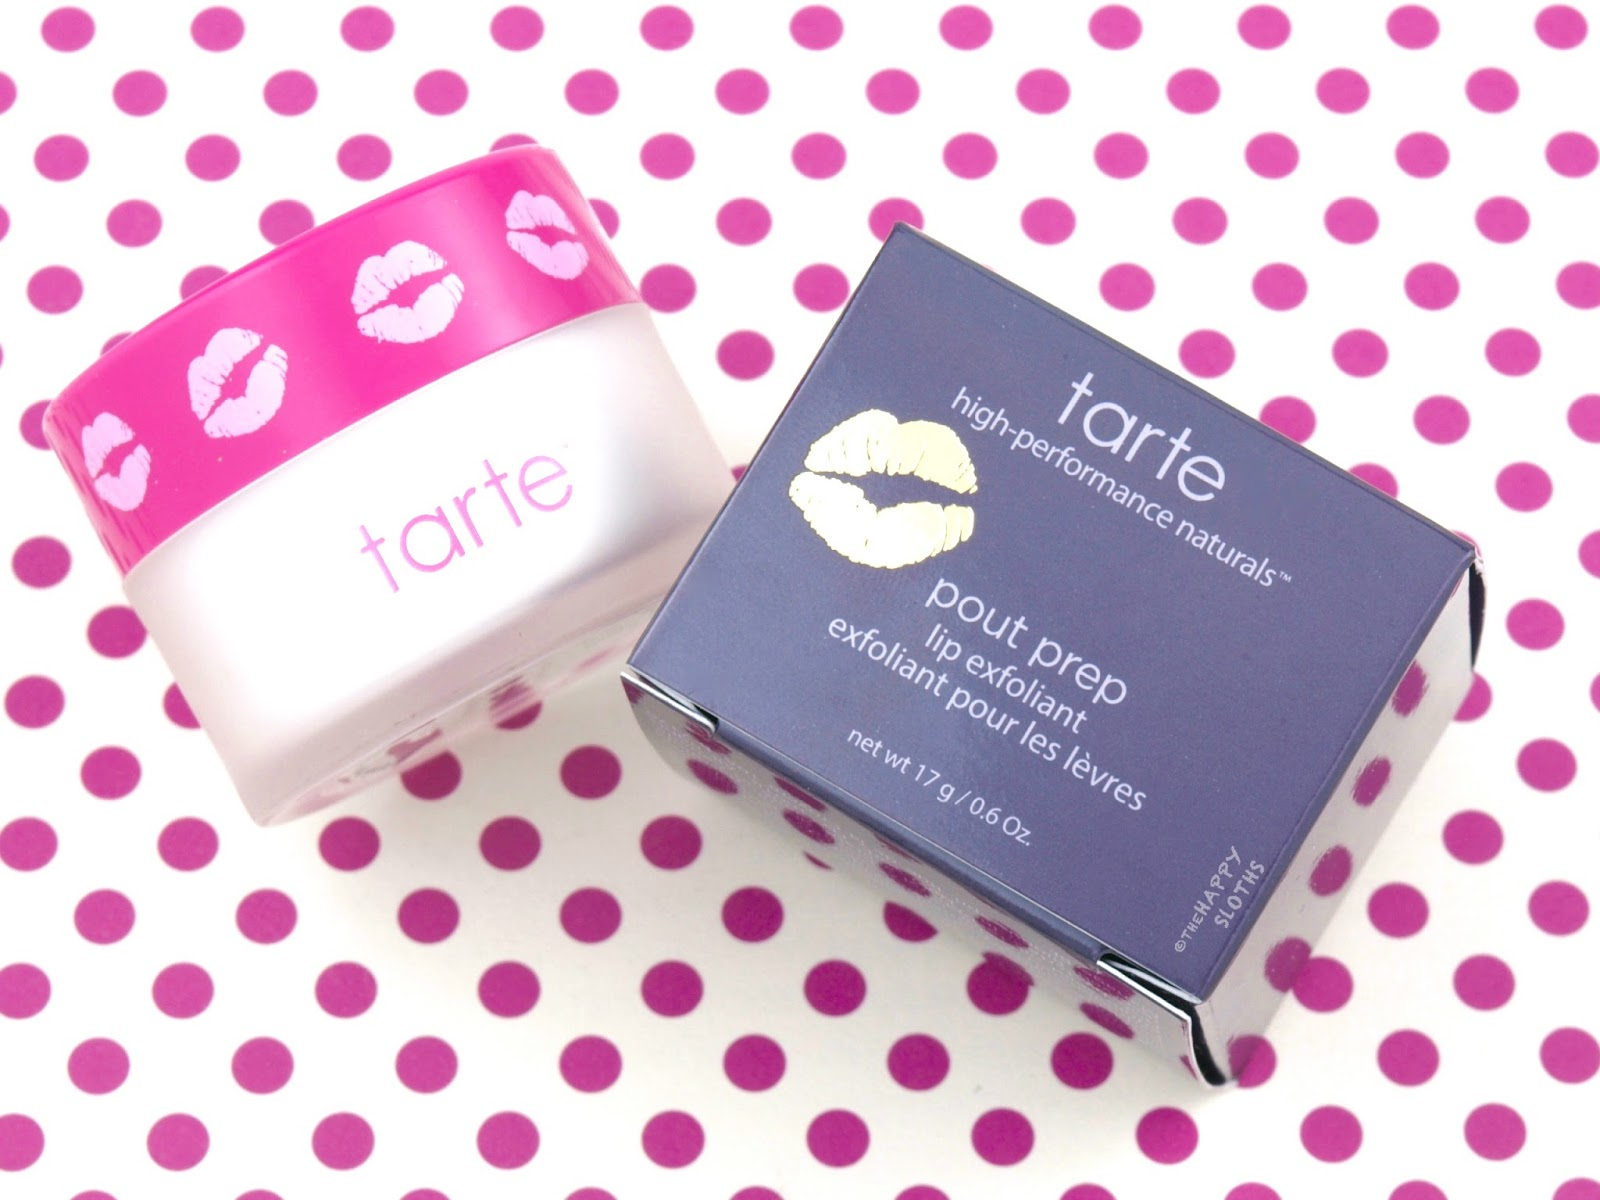 Tarte Pout Prep Lip Exfoliant: Review